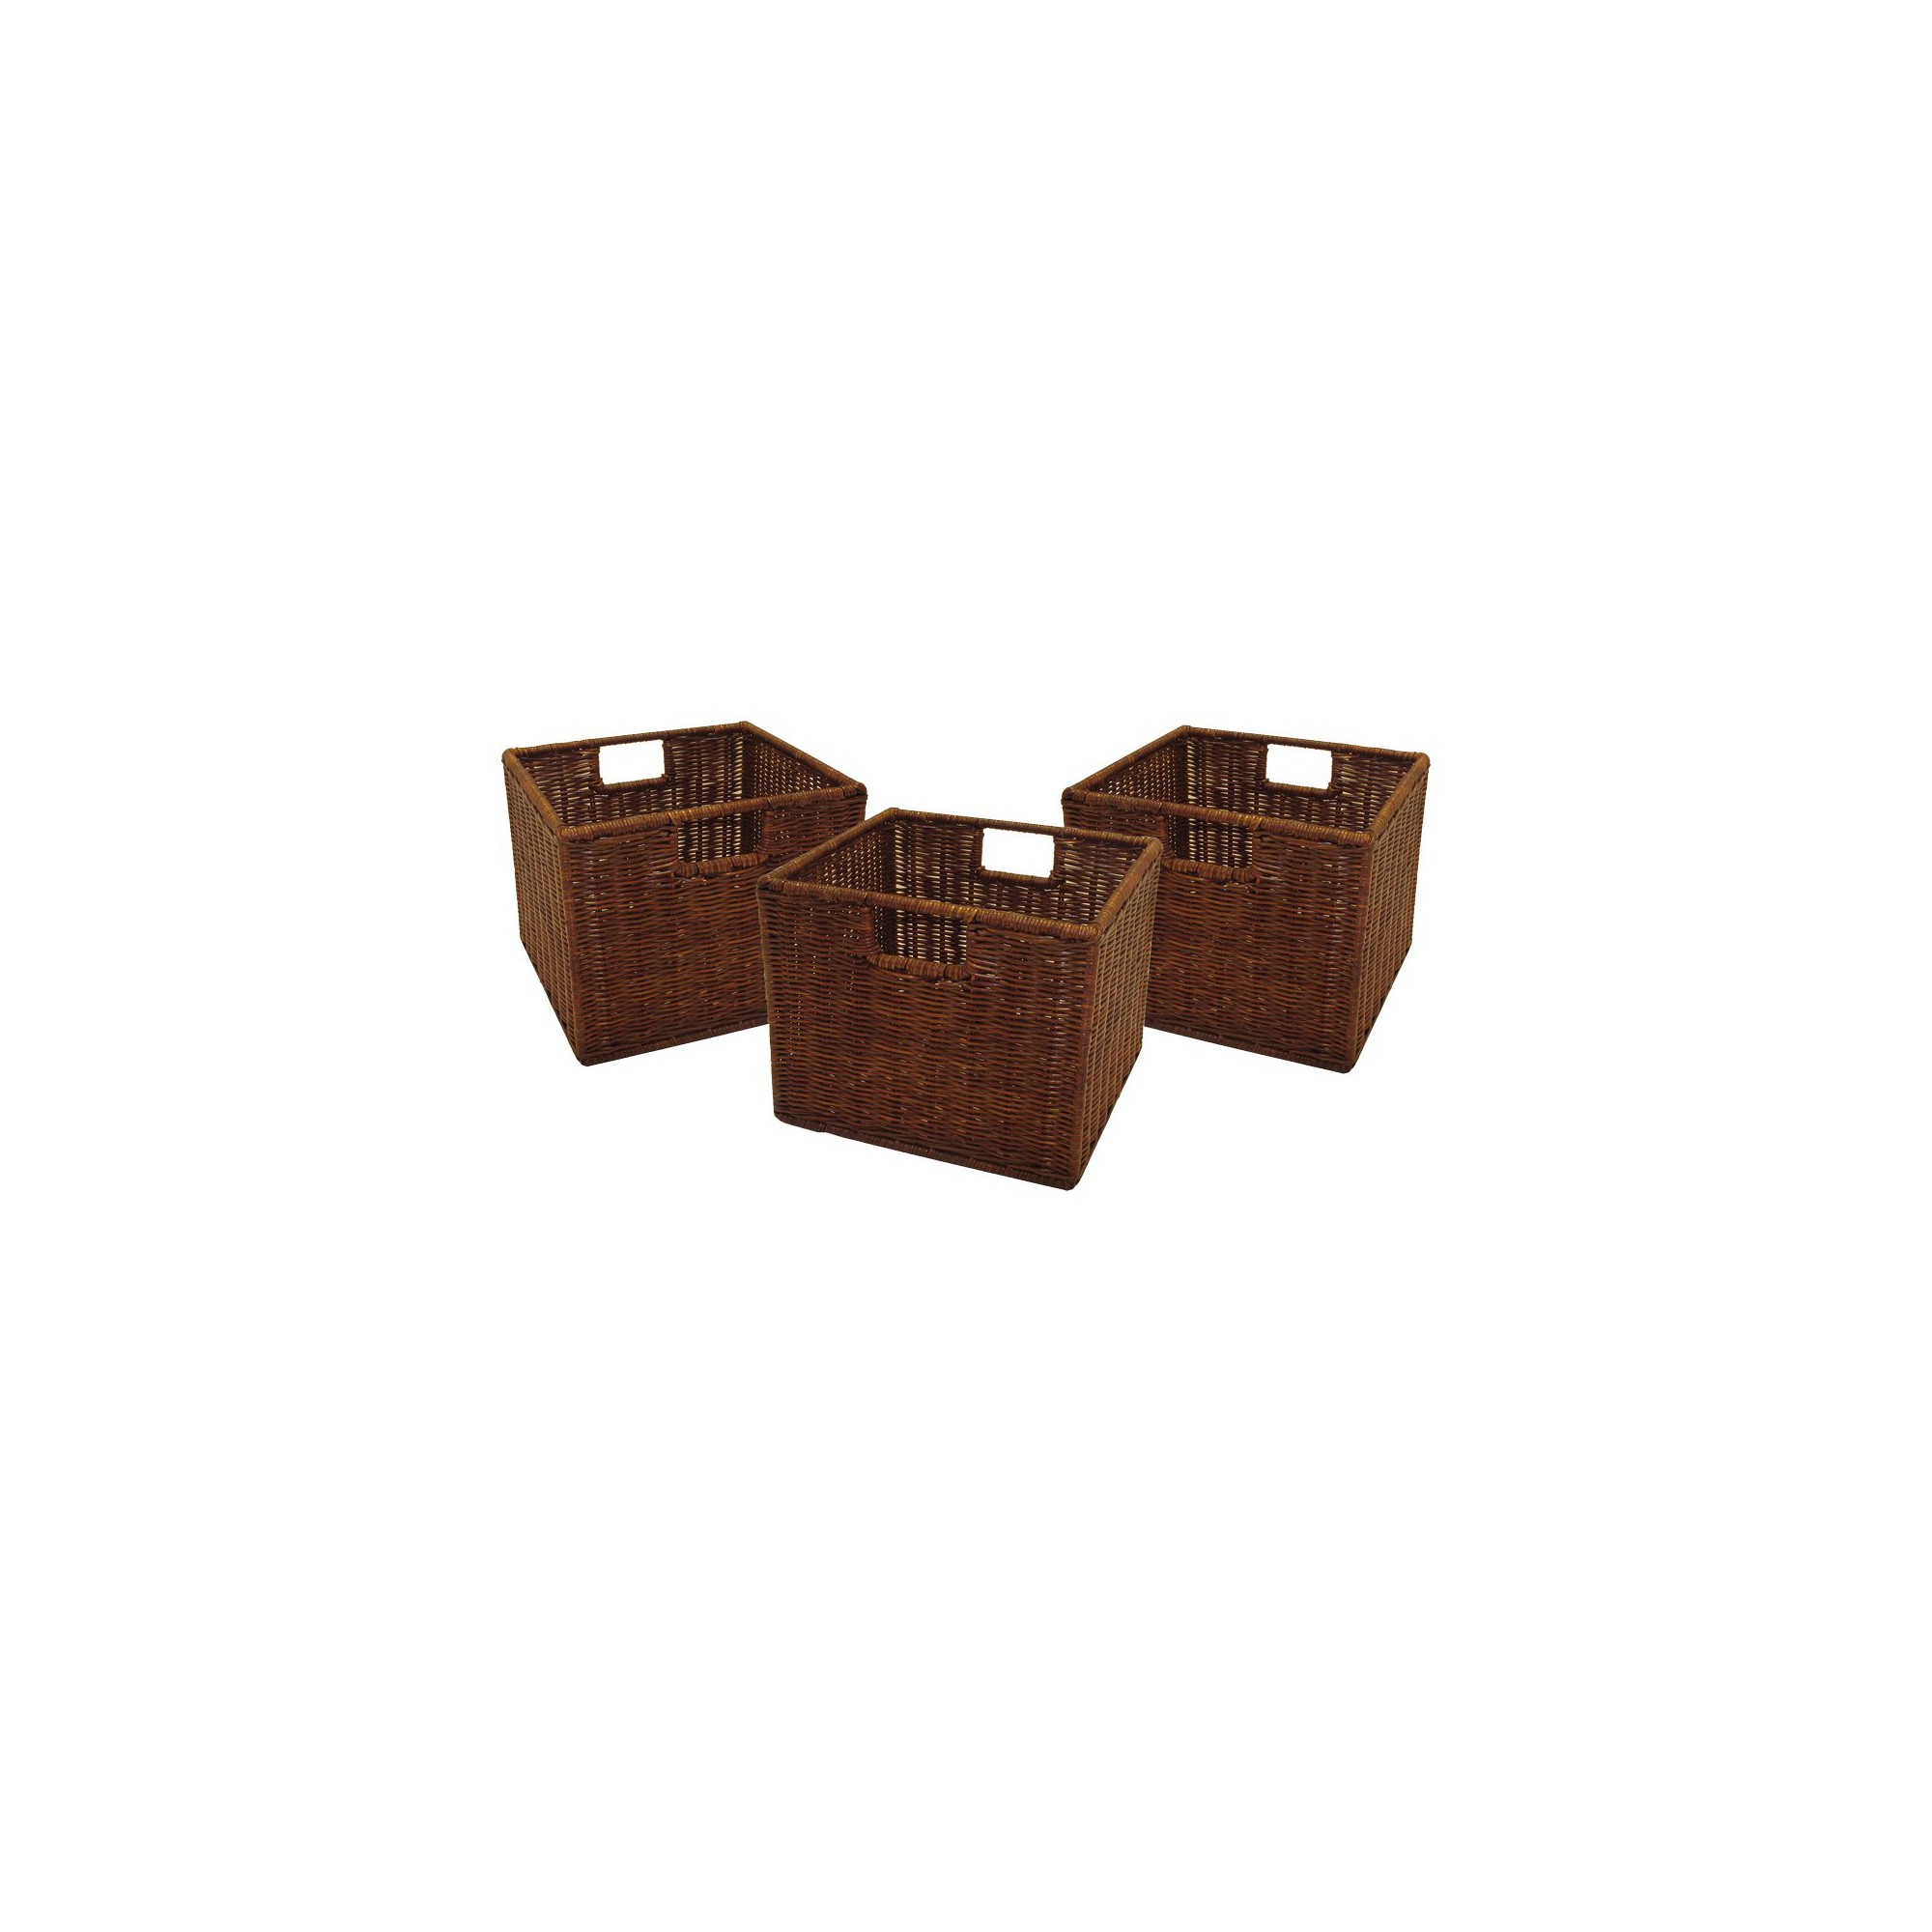 Set of 3 Winsome Cube Storage Basket - Antique Walnut, Brown